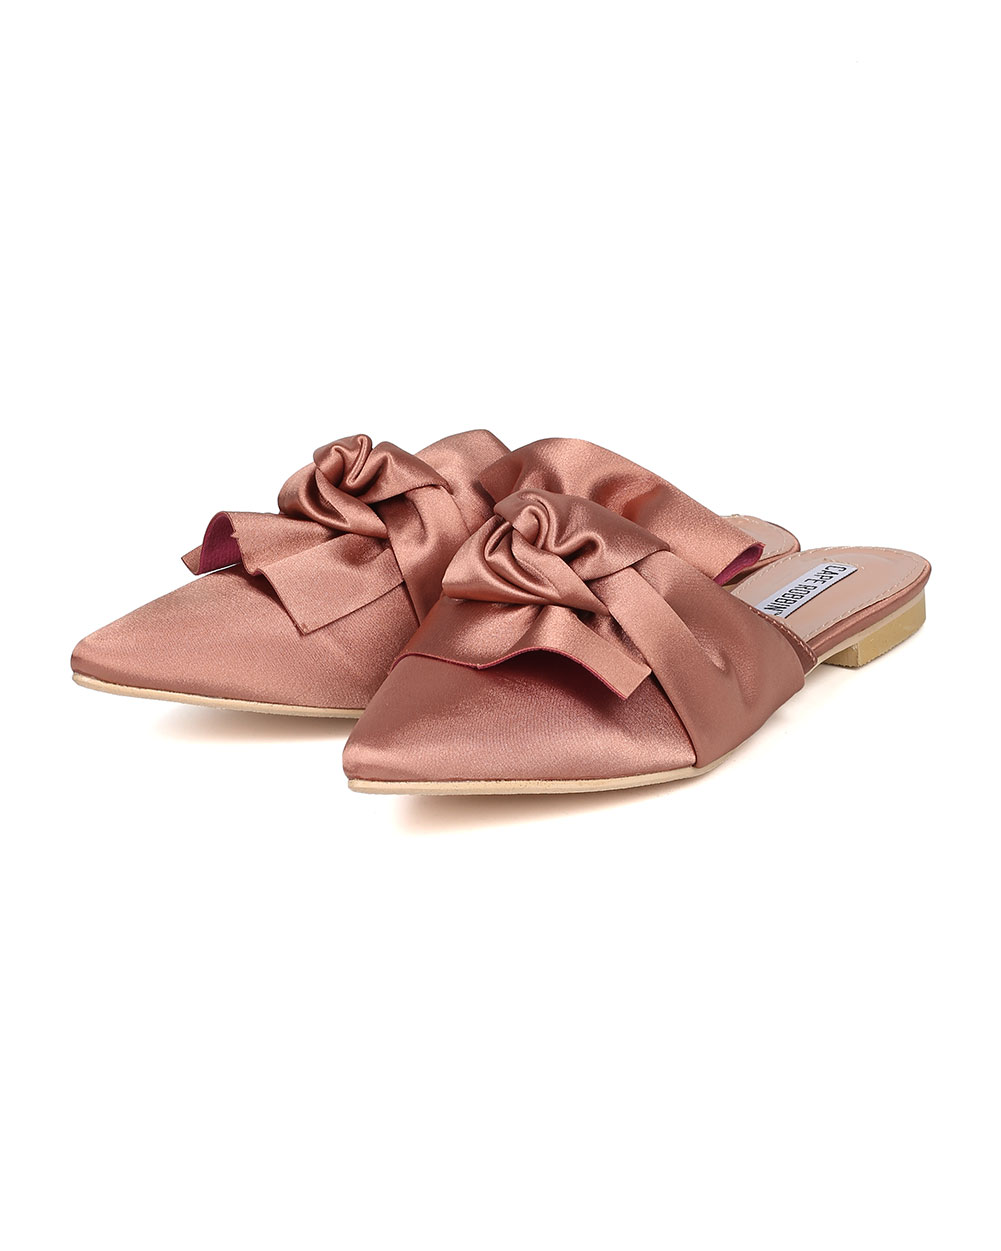 70c7162976f1 Cape Robbin - Women Knotted Flat Mule - Bow Slip On Sandal - Pointy Toe  Slide - HK09 By Cape Robbin - Walmart.com